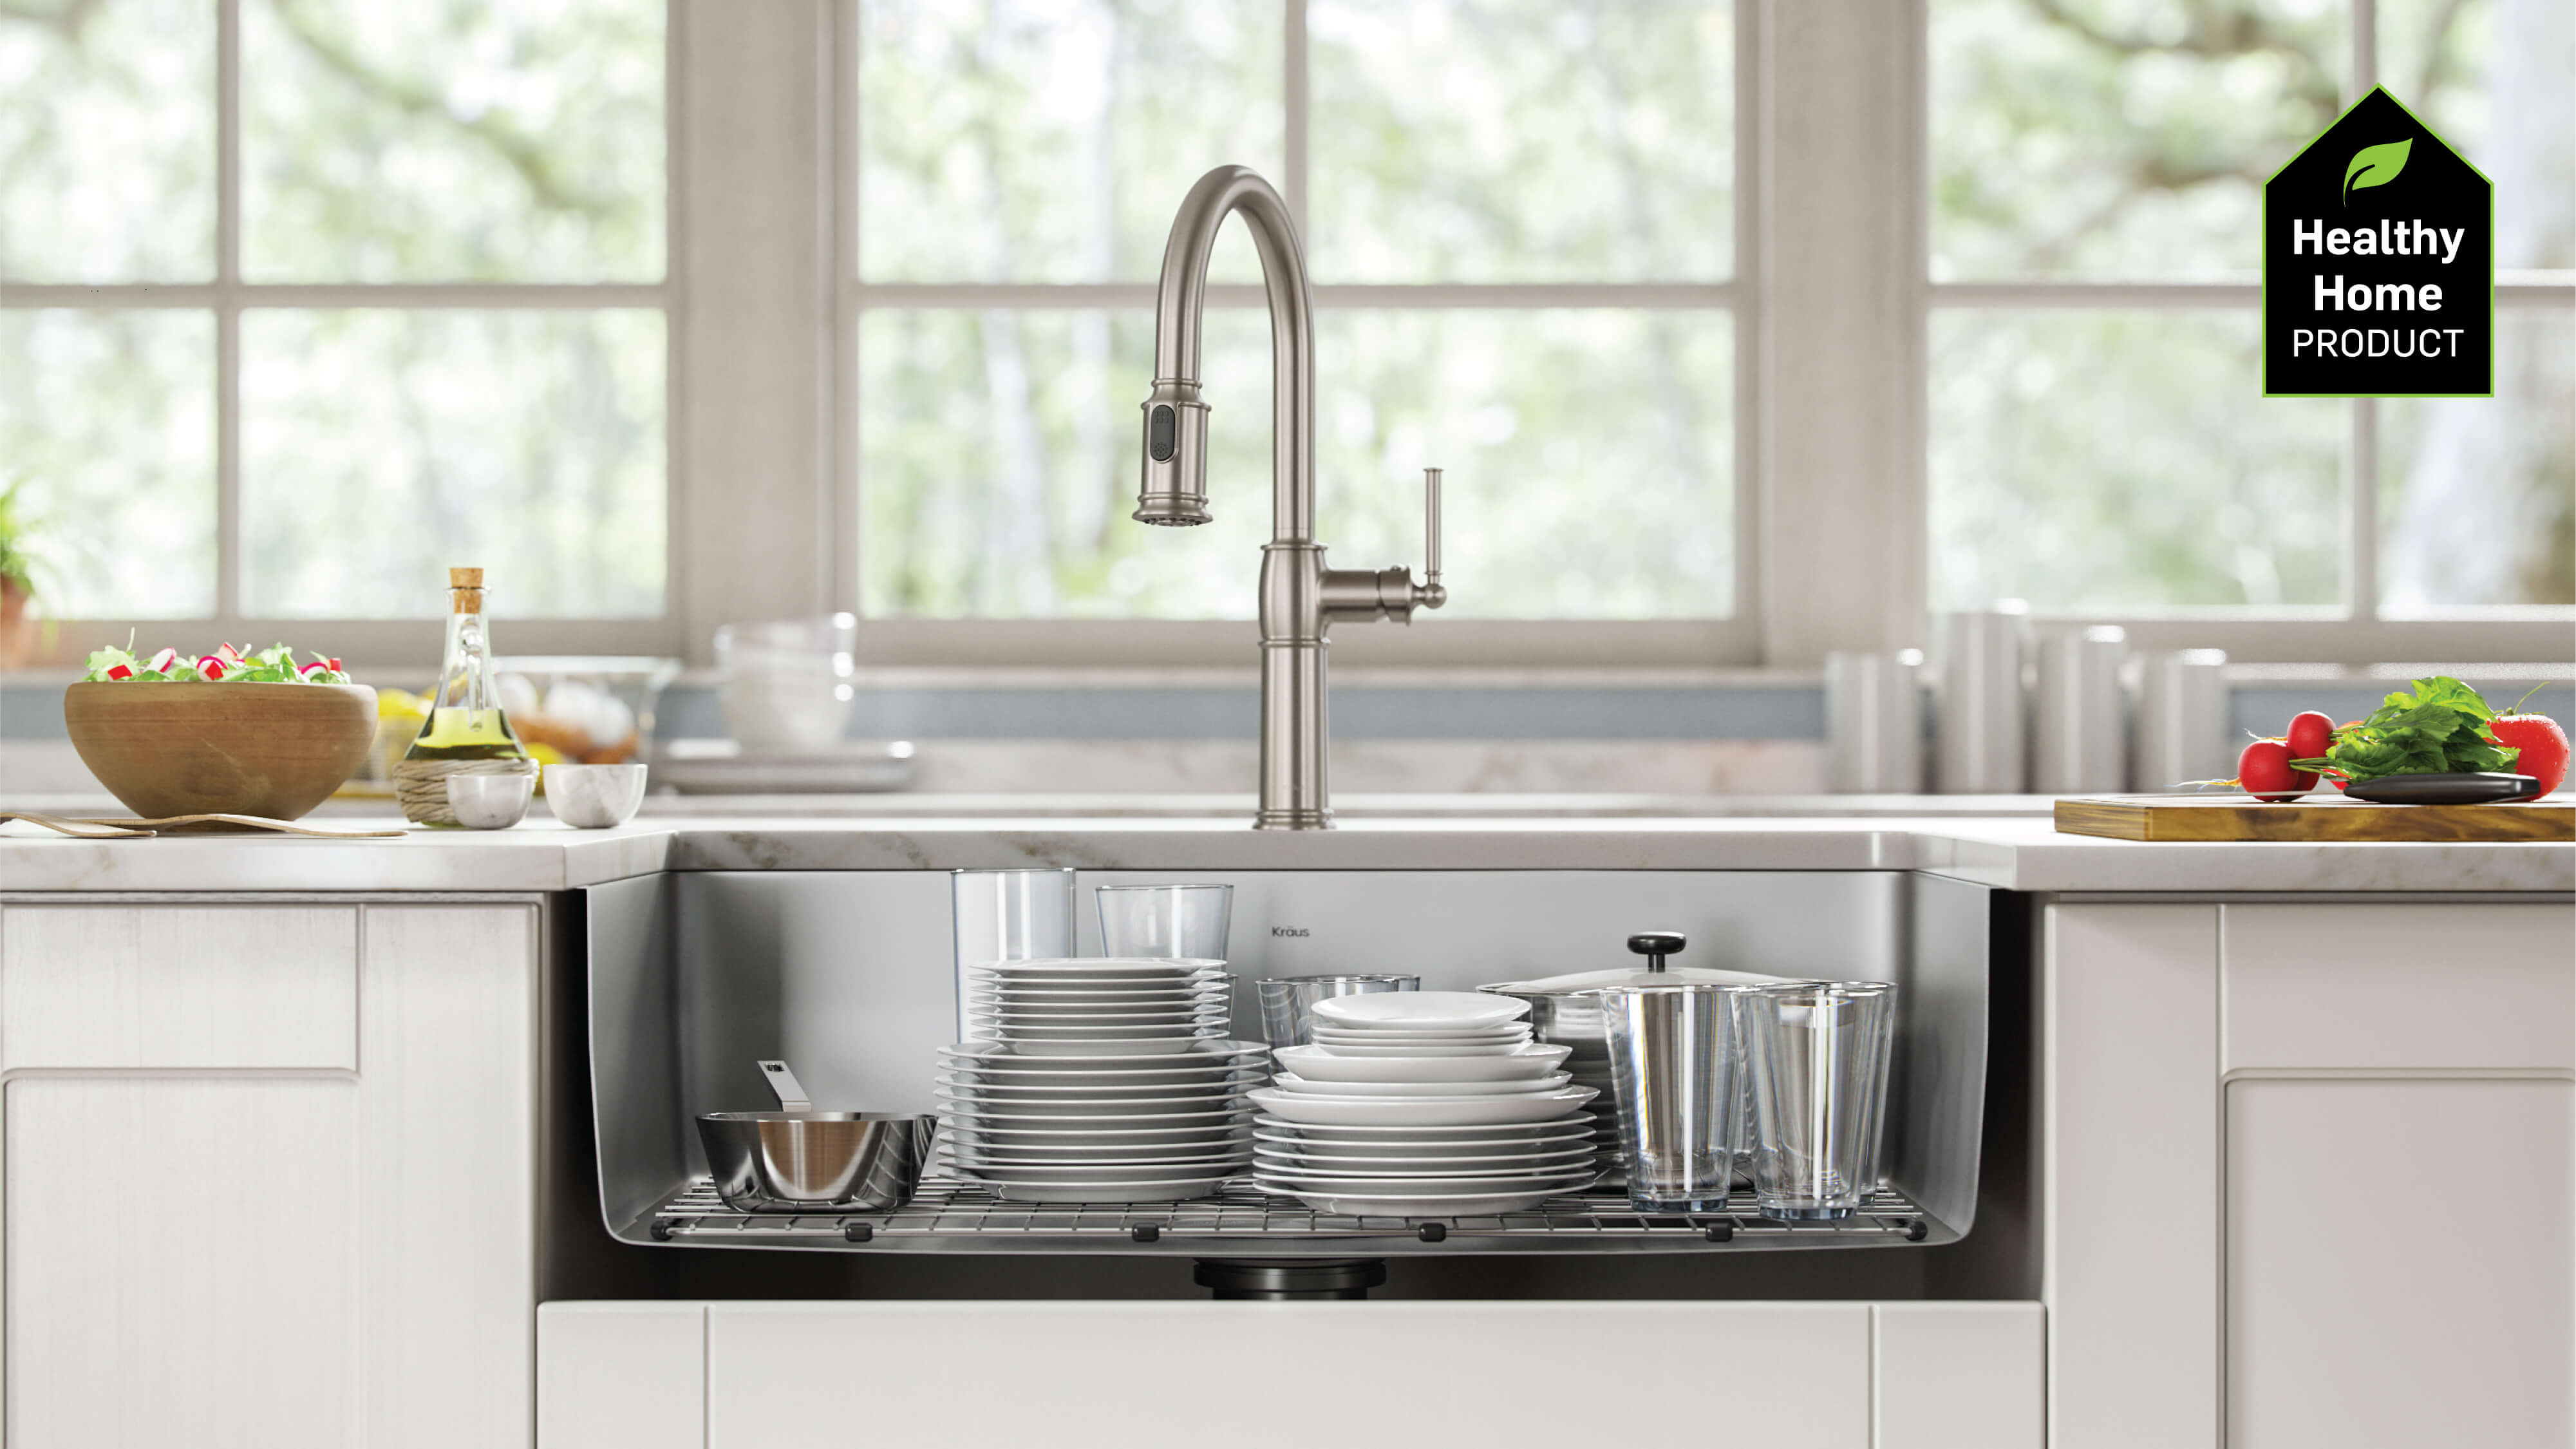 Kitchen Sinks for a Healthy Home